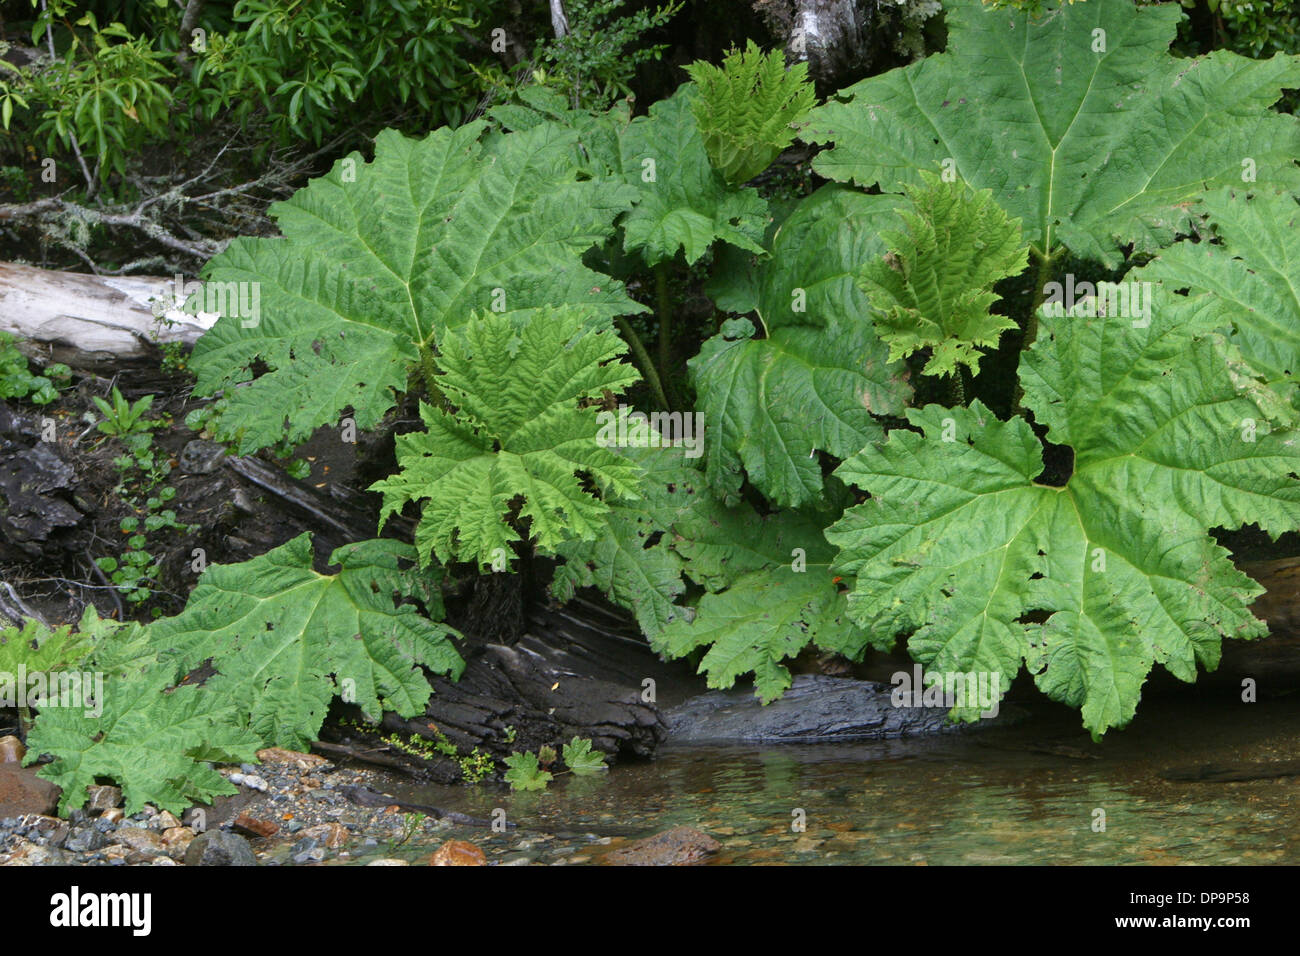 A Nalca or Pangue plant, Parque Aiken del Sur preserves a section of native forest near Puerto Chacabuco, Chile Stock Photo